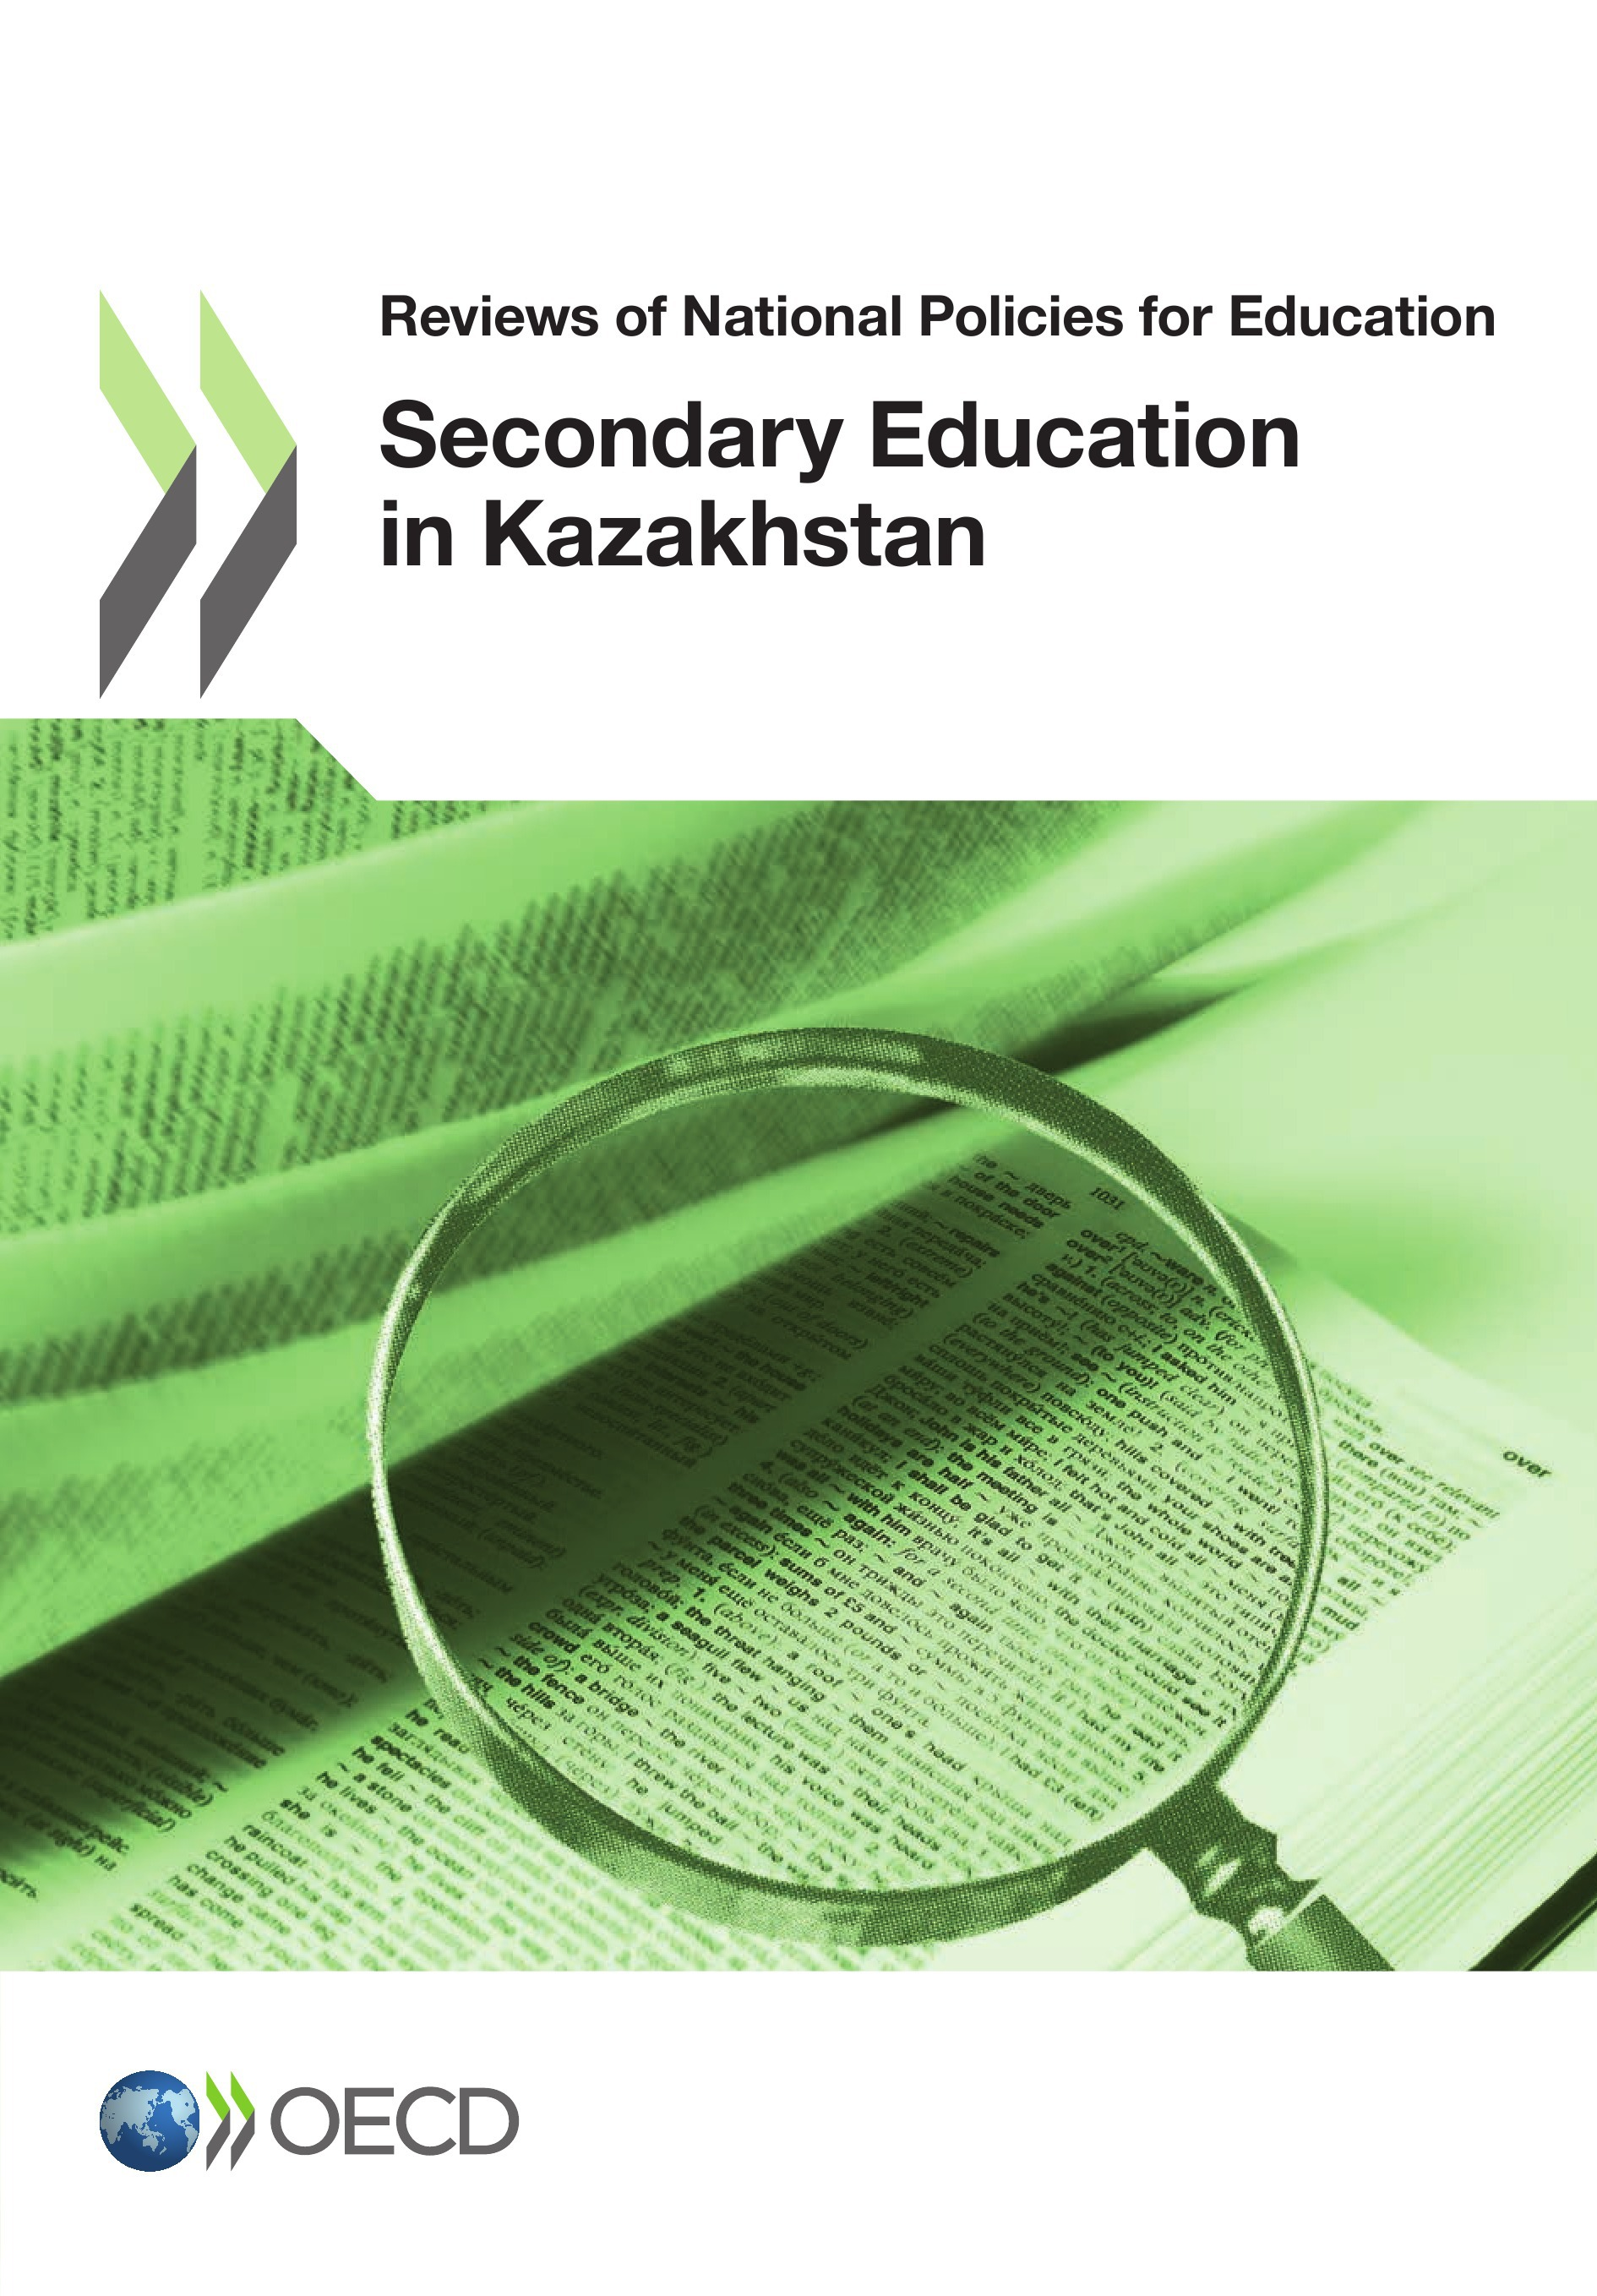 Reviews of national policies for education : secondary education in Kazakhstan